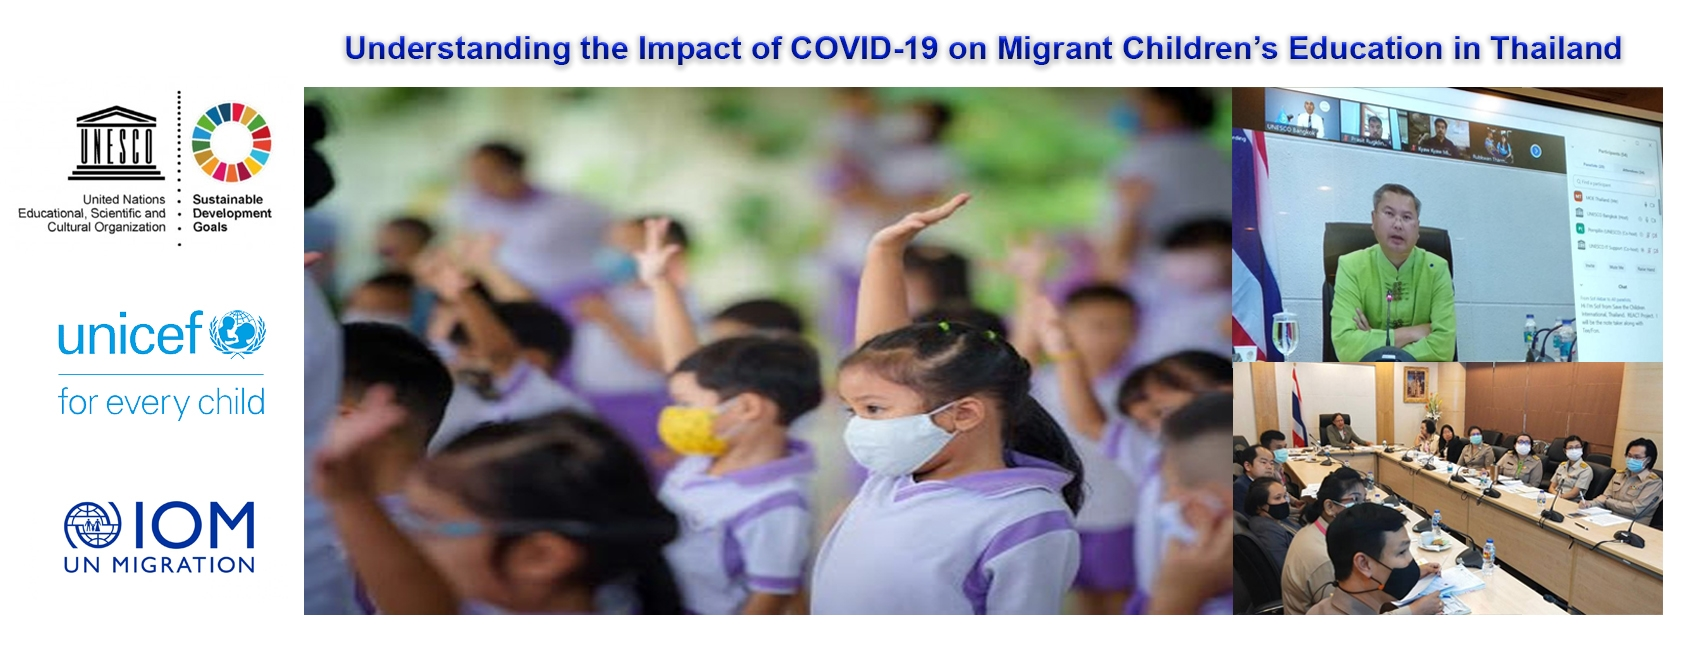 Migrant Childrens Education in Thailand 15 12 2563